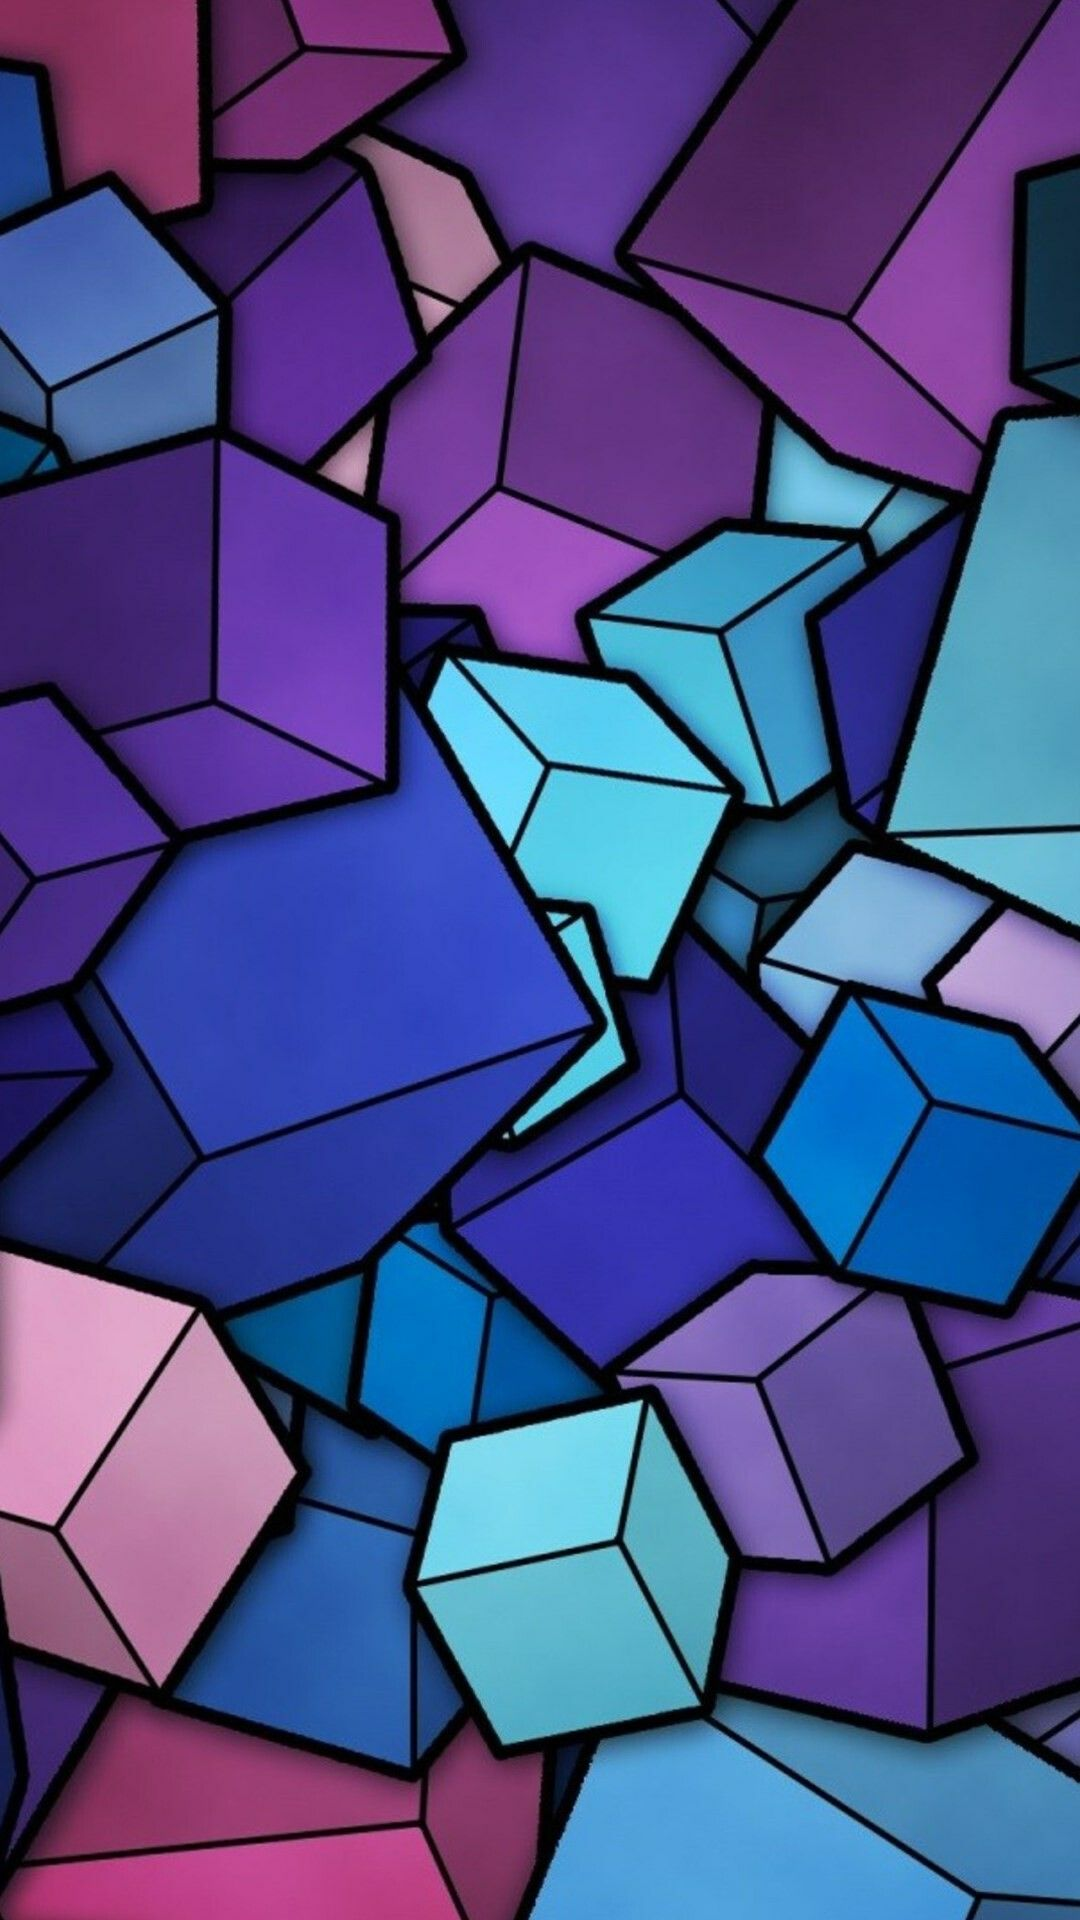 Abstract Blue Cyan Purple Cubes Abstract Iphone Wallpaper Cool Wallpapers For Phones Abstract Wallpaper